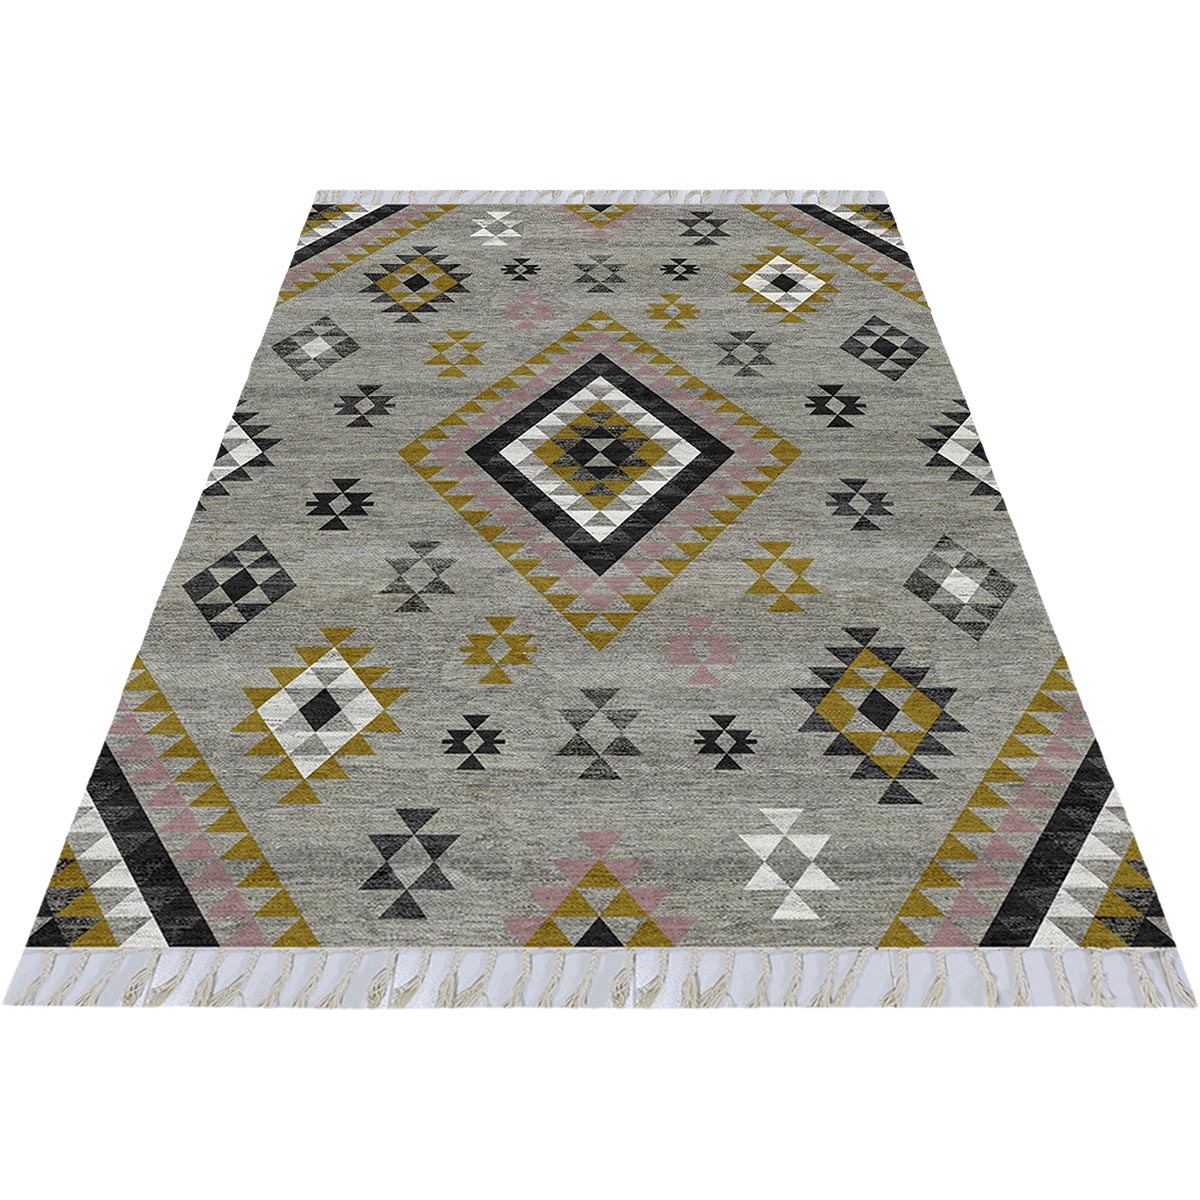 Tangier Rug 08 Grey/Yellow 2